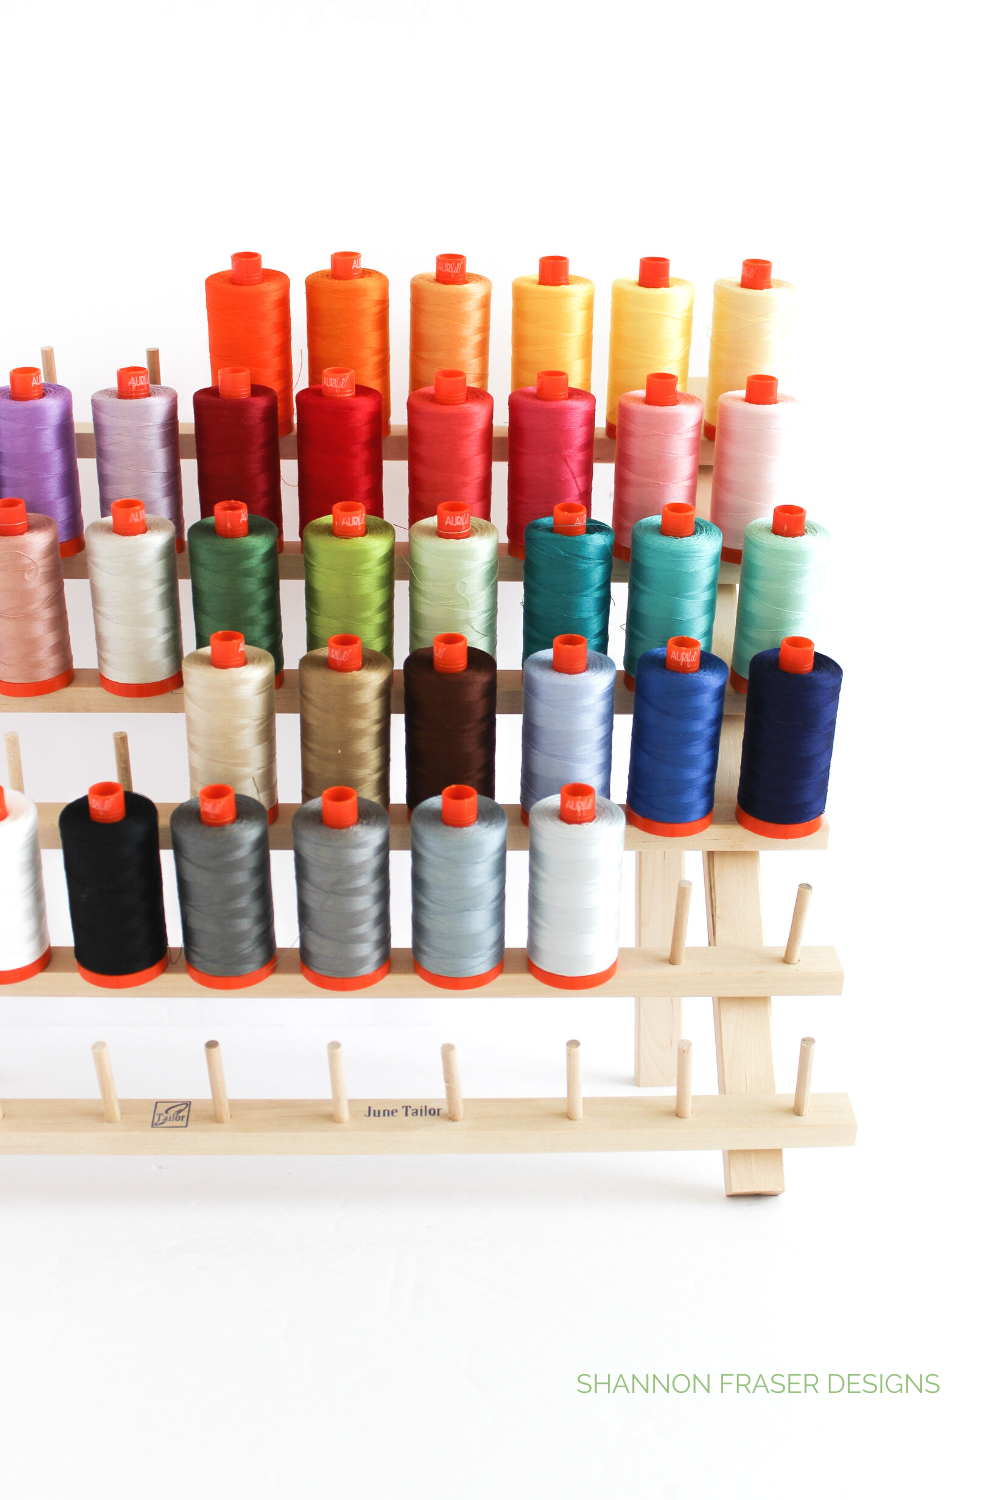 Wooden June Tailor thread rack with Aurifil Thread large spools in multi-colors | 2020 Aurifil Artisan Collection | Shannon Fraser Designs #threadrack